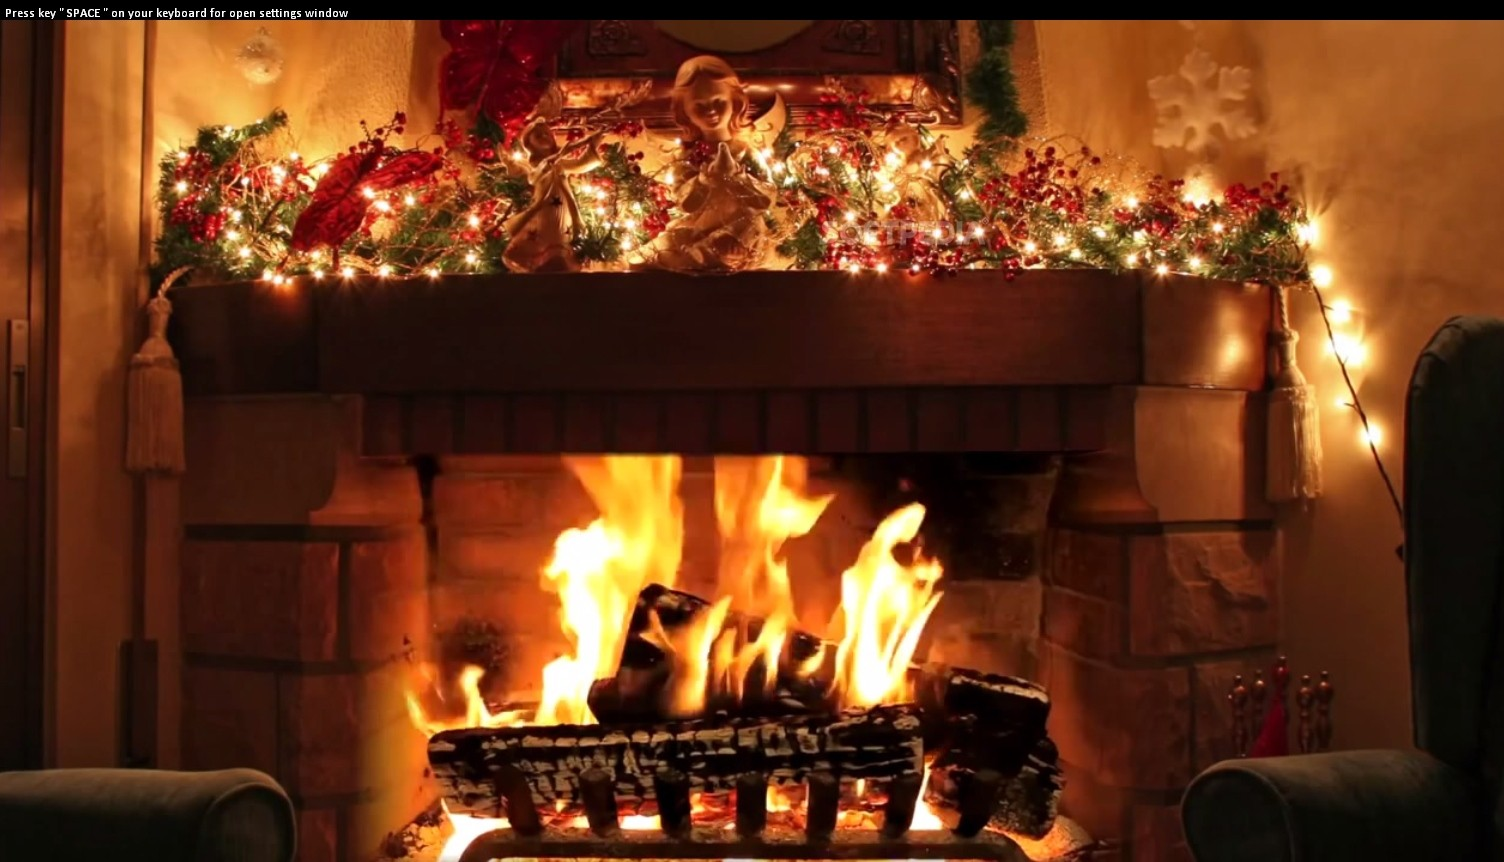 Christmas Fireplace ScreenSaver  Christmas Fireplace ScreenSaver is a